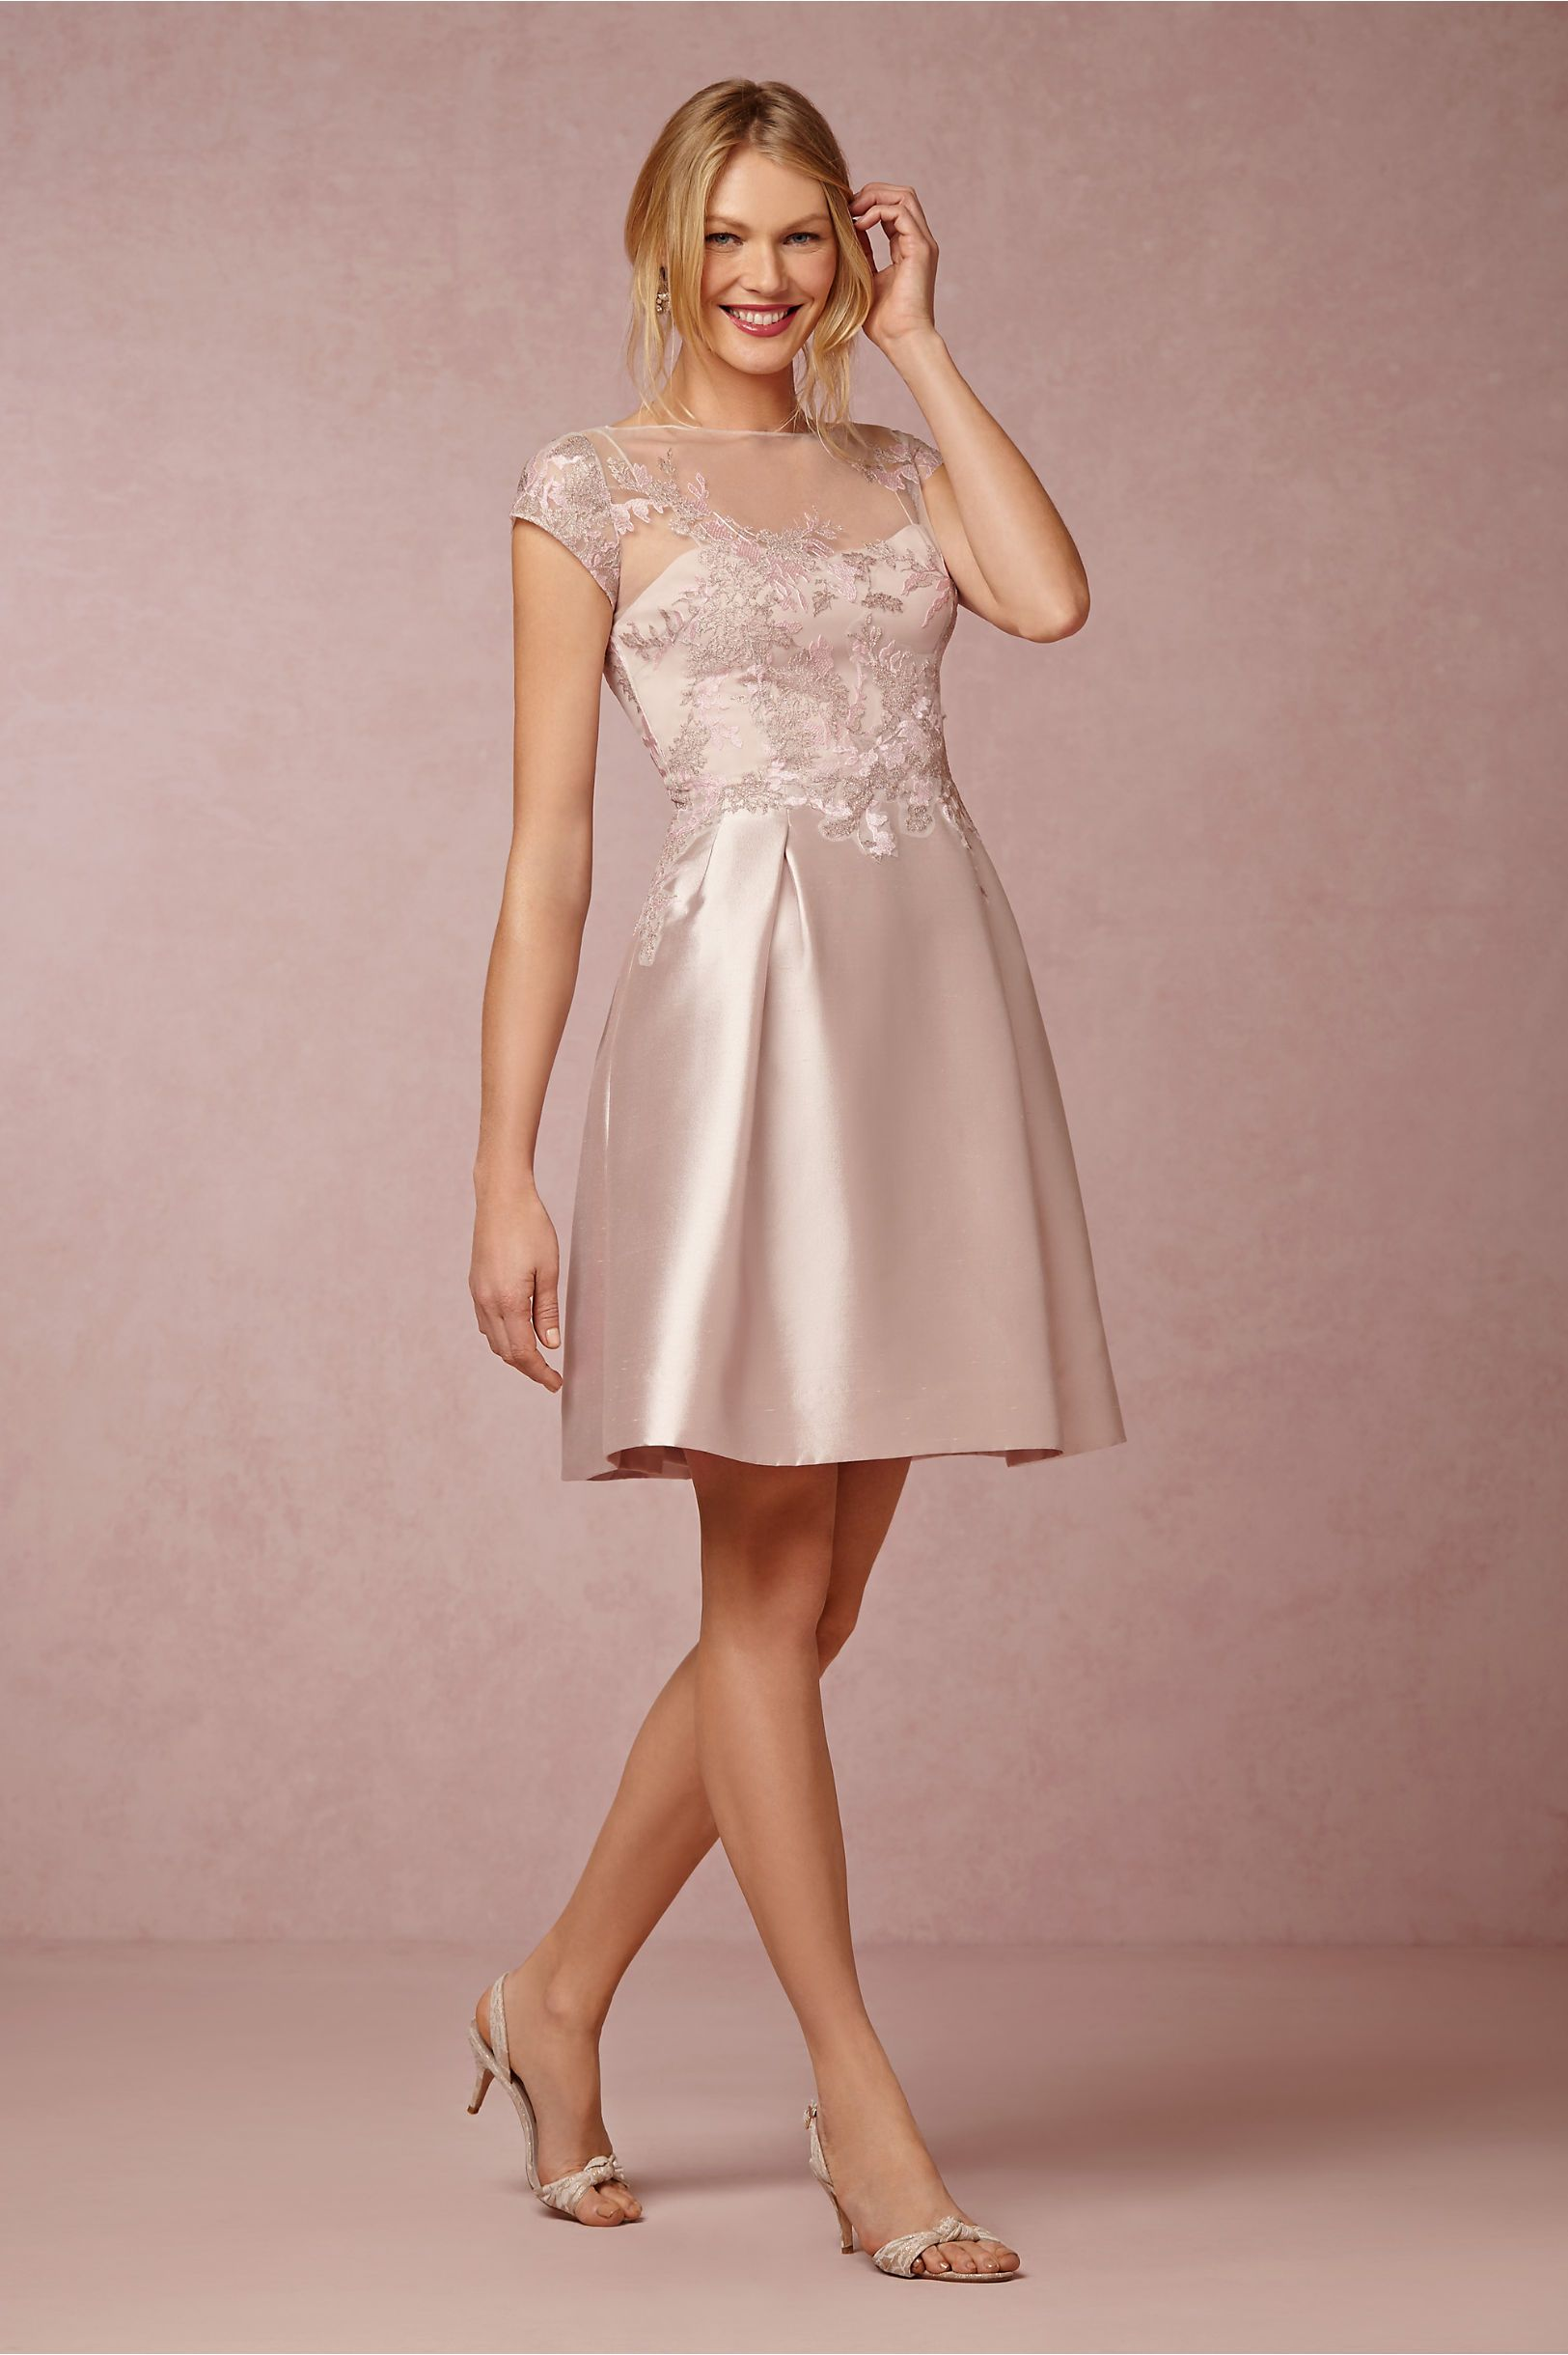 Imogen Mother of the Bride Dress from @BHLDN | Mother of the Bride ...